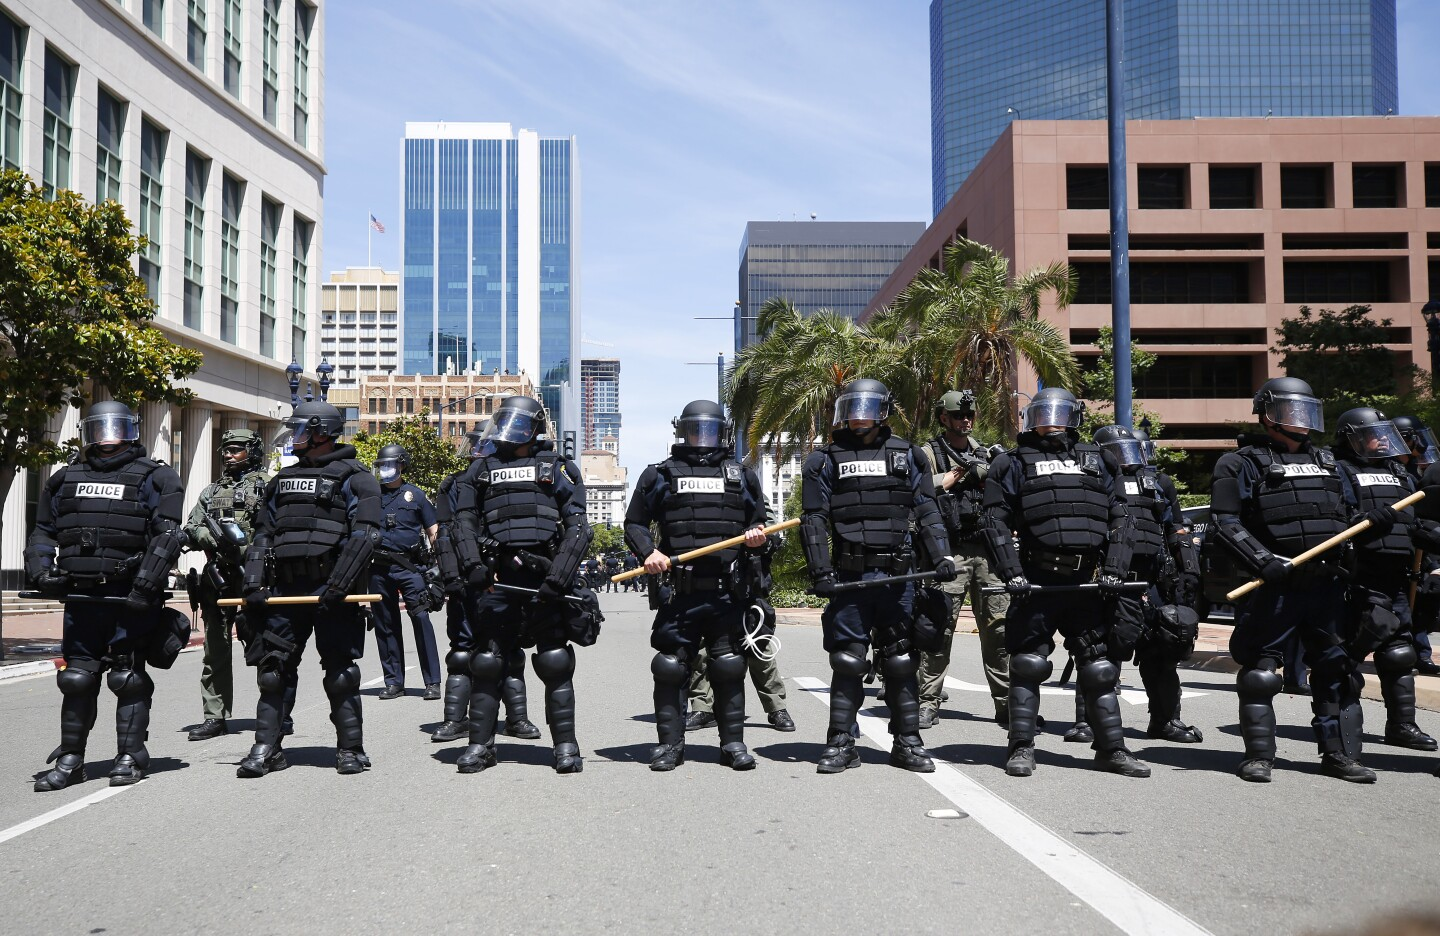 San Diego police in riot gear lined Broadway in downtown San Diego stopping a group of protesters on May 31, 2020. The group was protesting the death of George Floyd.